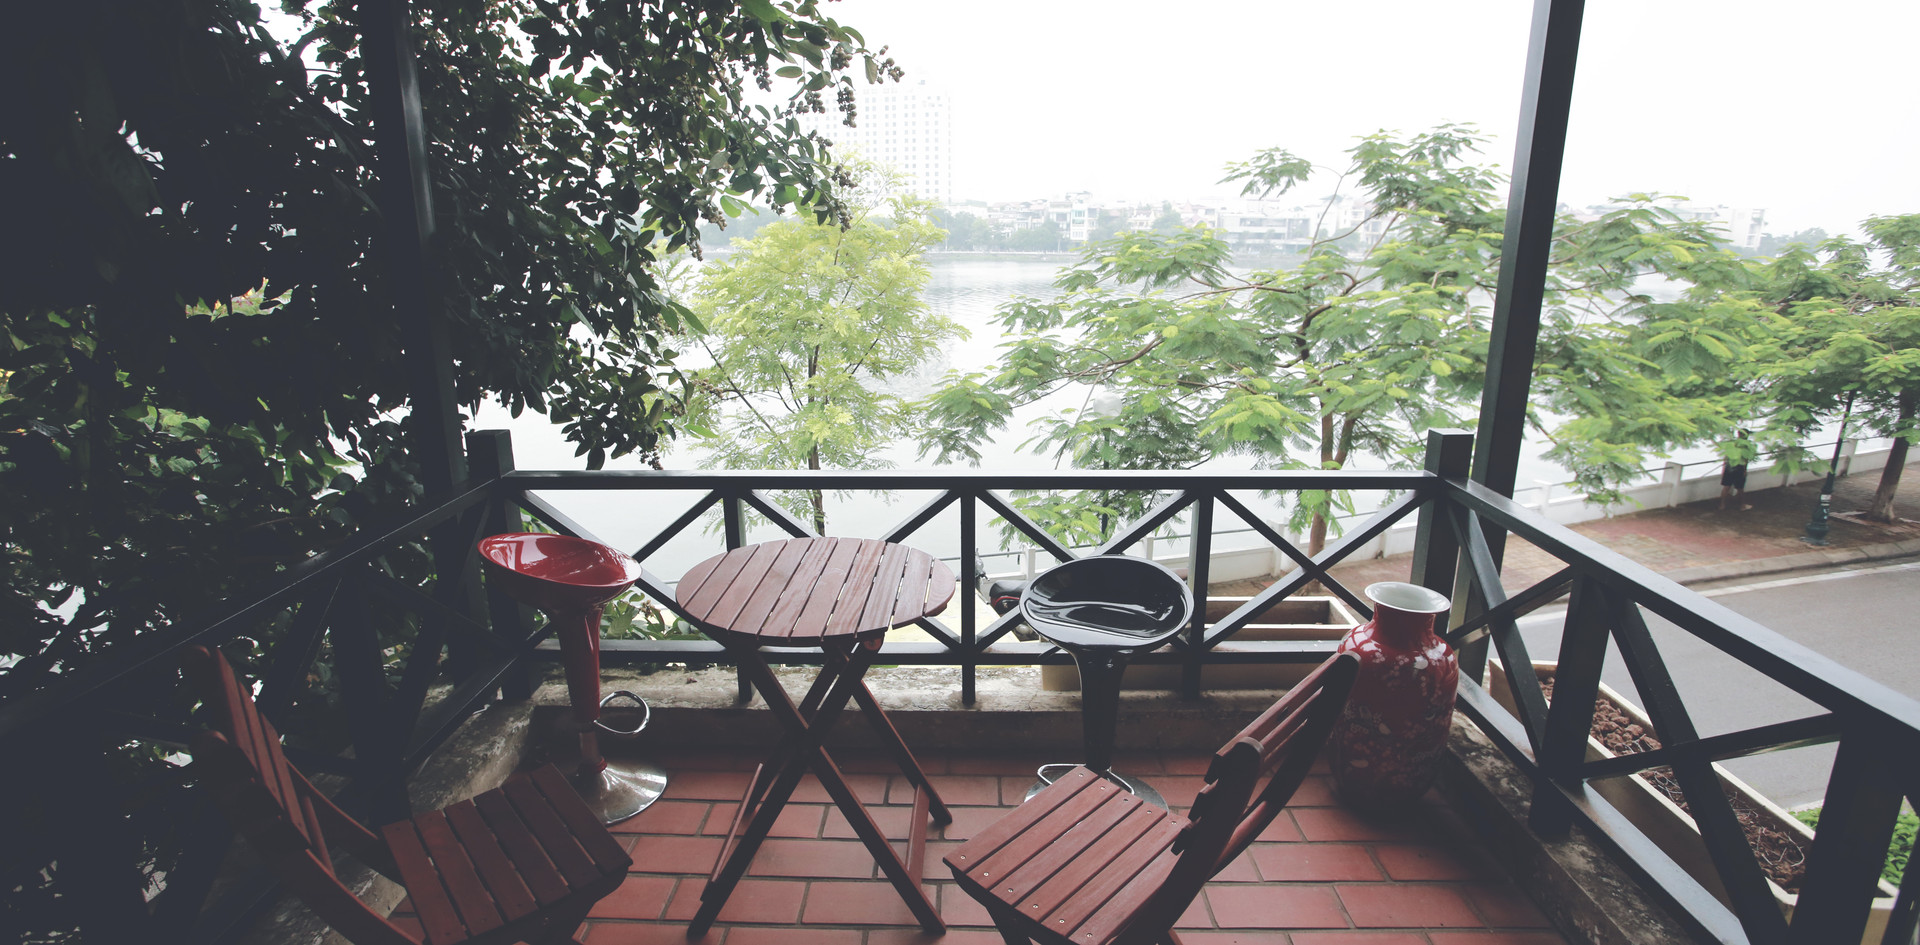 Lakeview balcony